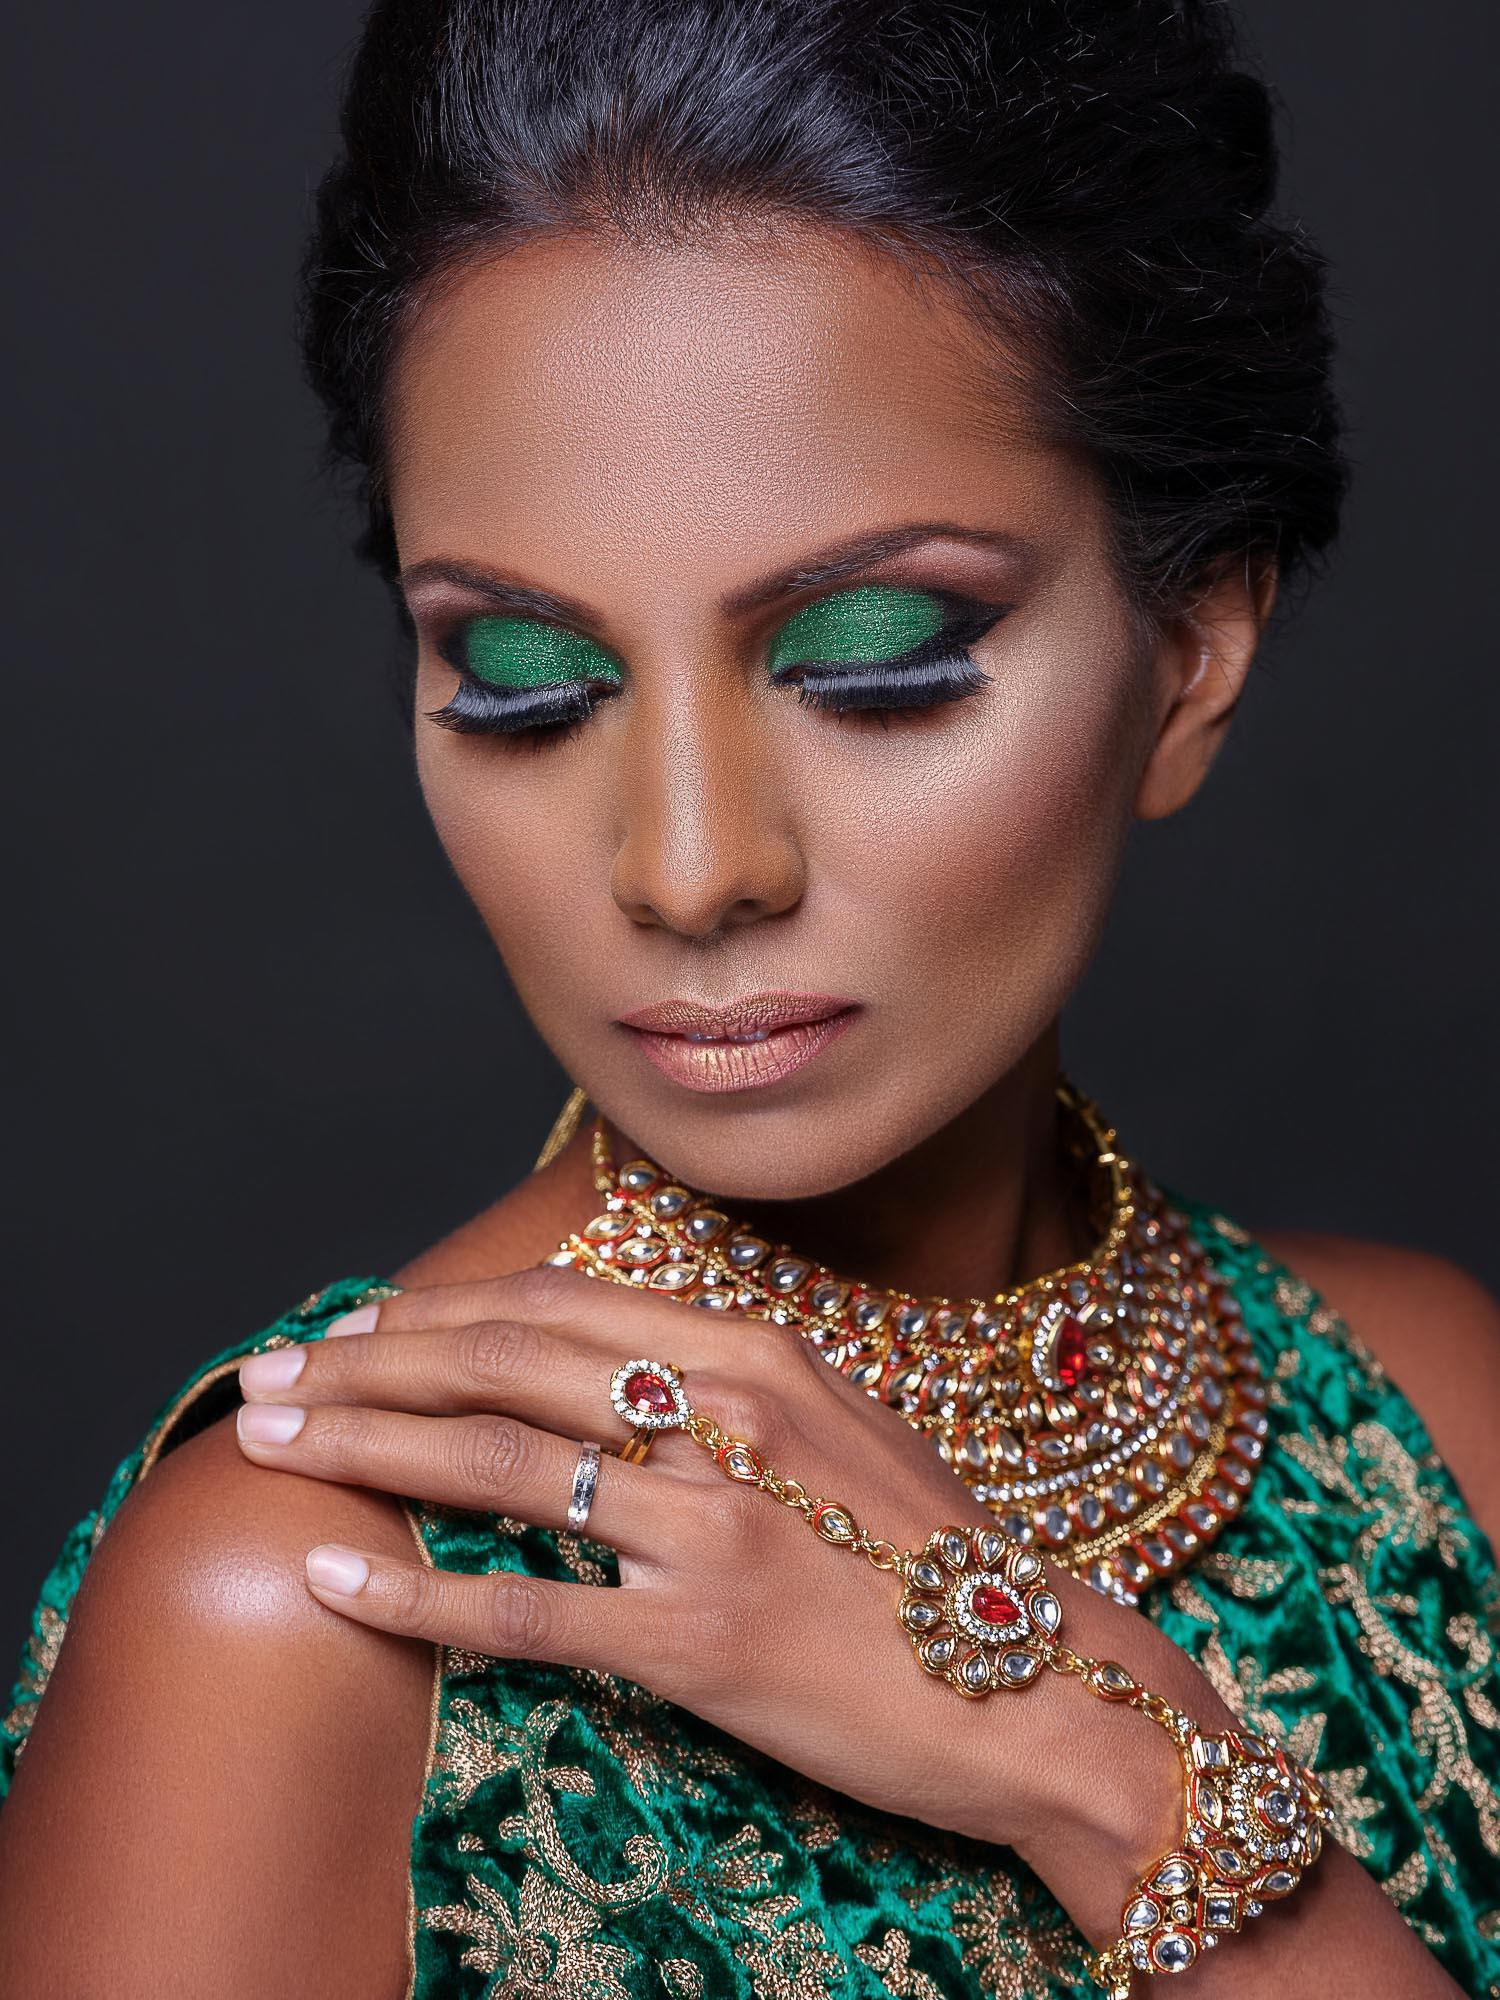 shanthi jeuland coco pr agency fashion beauty photography photographer model singapore sg mode studio photoshoot style fujifilm gfx 50s medium format india indian portrait gold green pretty 110mm